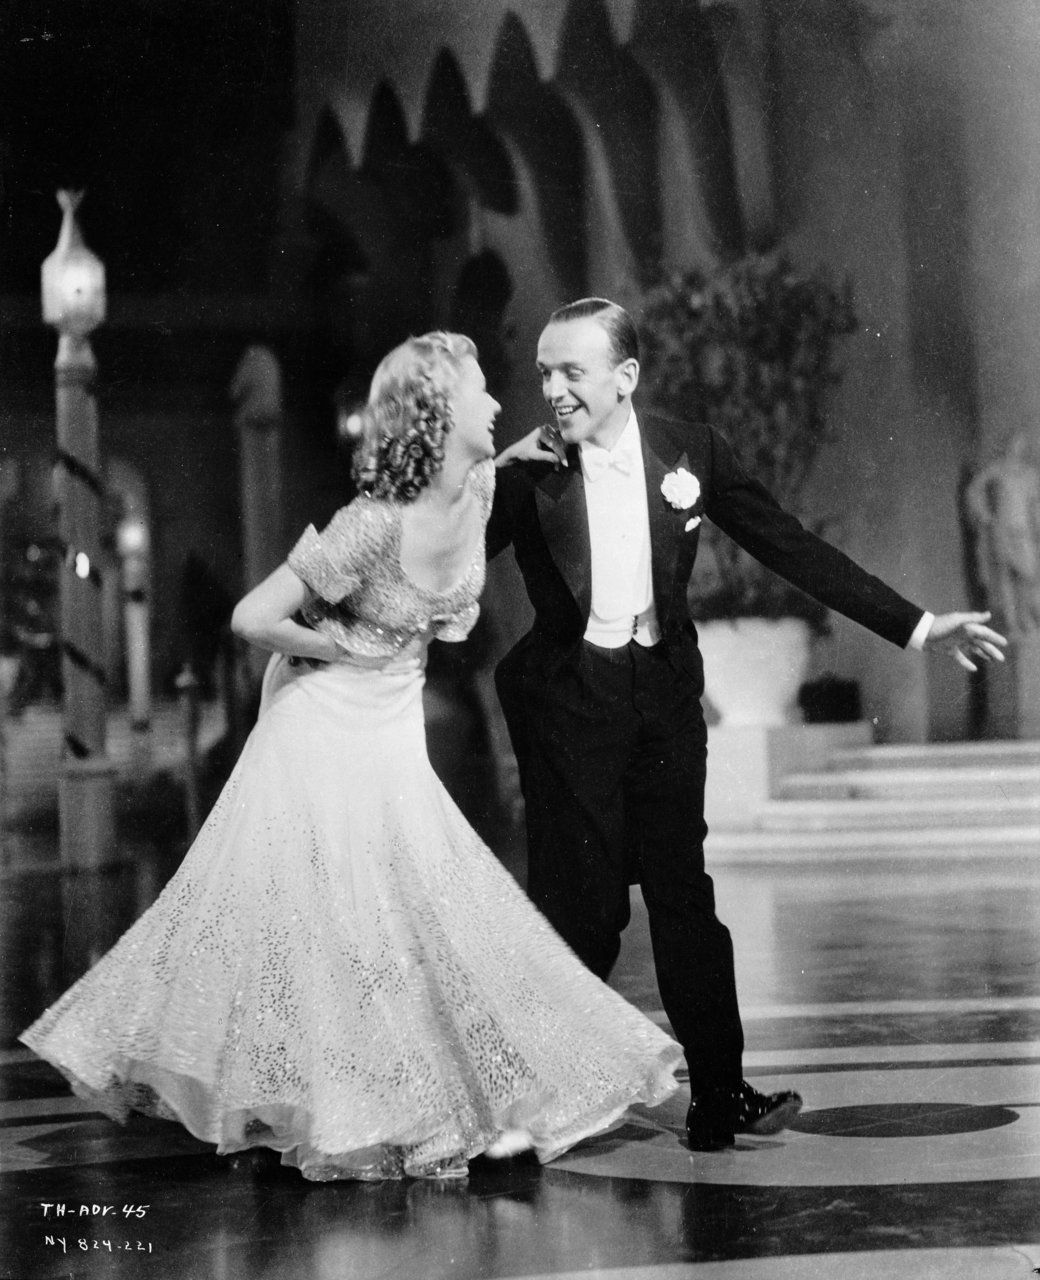 Ginger Rogers & Fred Astaire in Top Hat (1935 dir. Mark